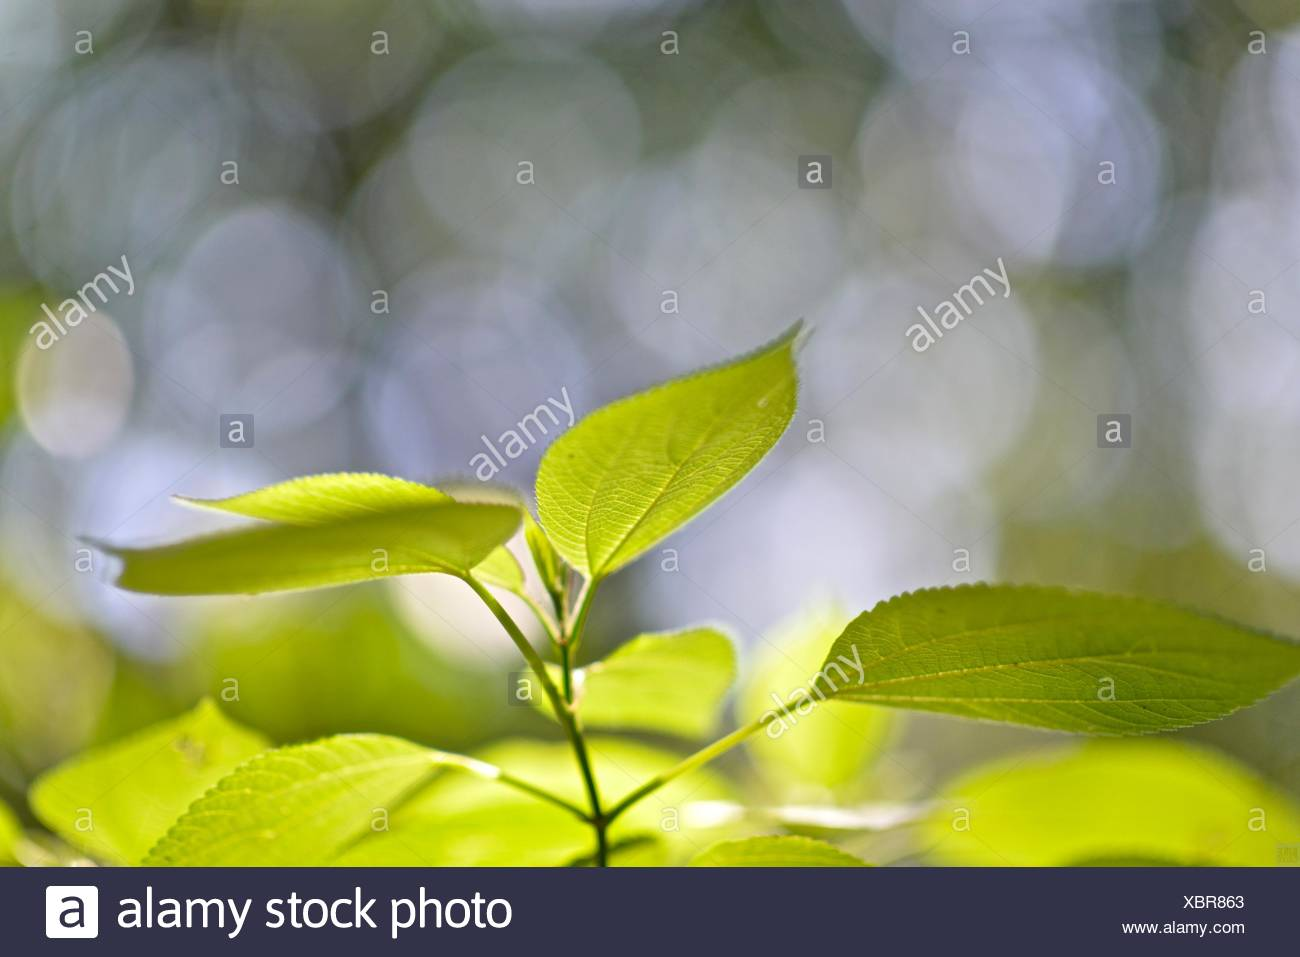 Plant leaves grow in Poco das Antas Biological Reserve. Stock Photo